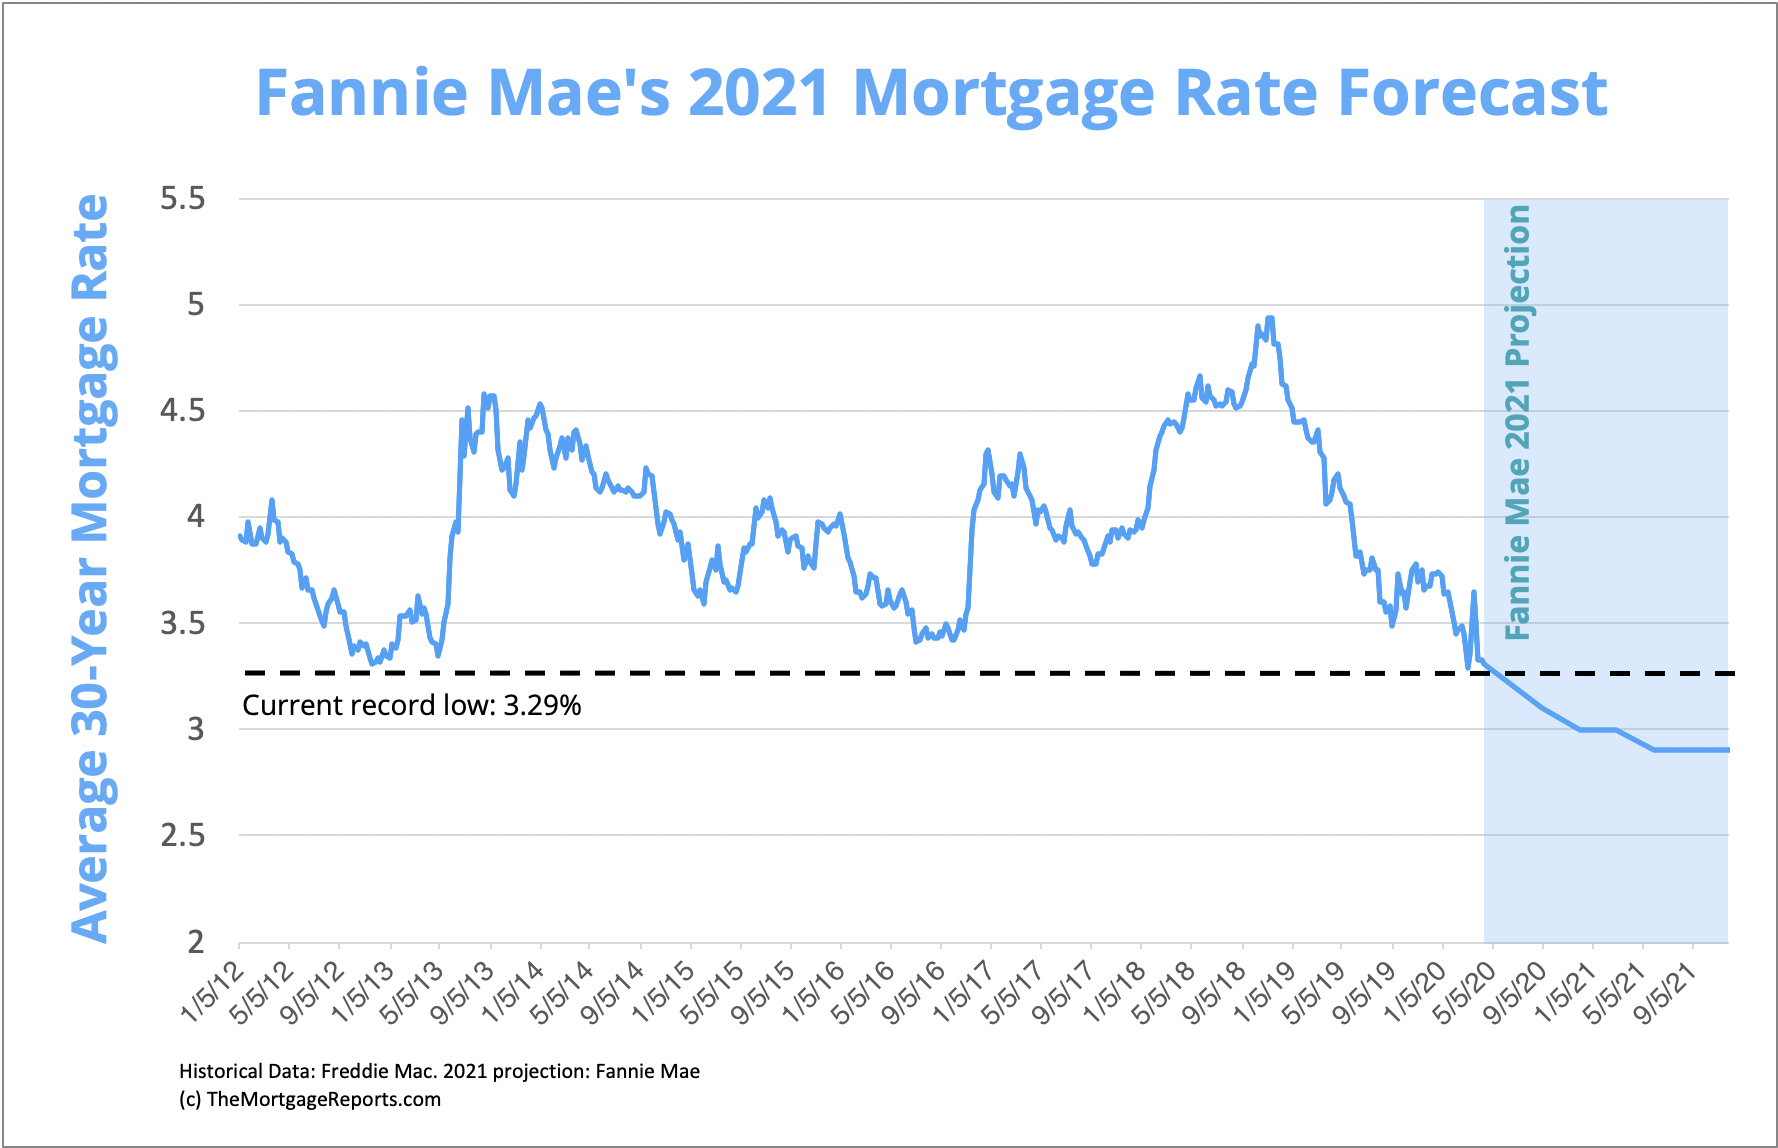 Breaking This Agency Predicts 2 9 Mortgage Rates By 2021 Mortgage Rates Mortgage News And Strategy The Mortgage Reports